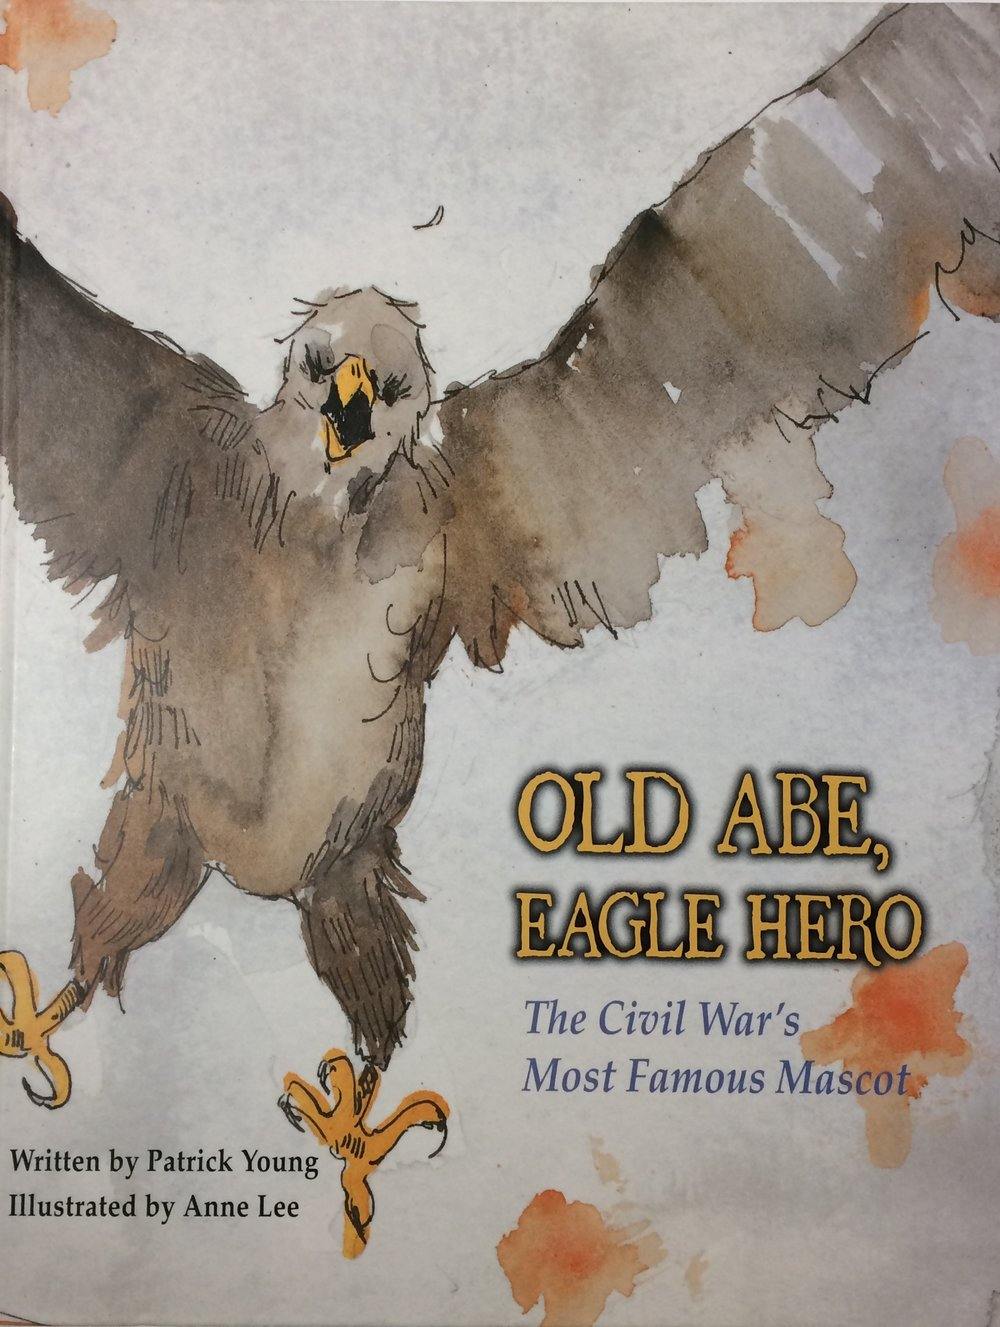 OLD ABE, EAGLE HERO - Written by Patrick Young, Illustrated by Anne LeePublished 2010 by Kane Miller